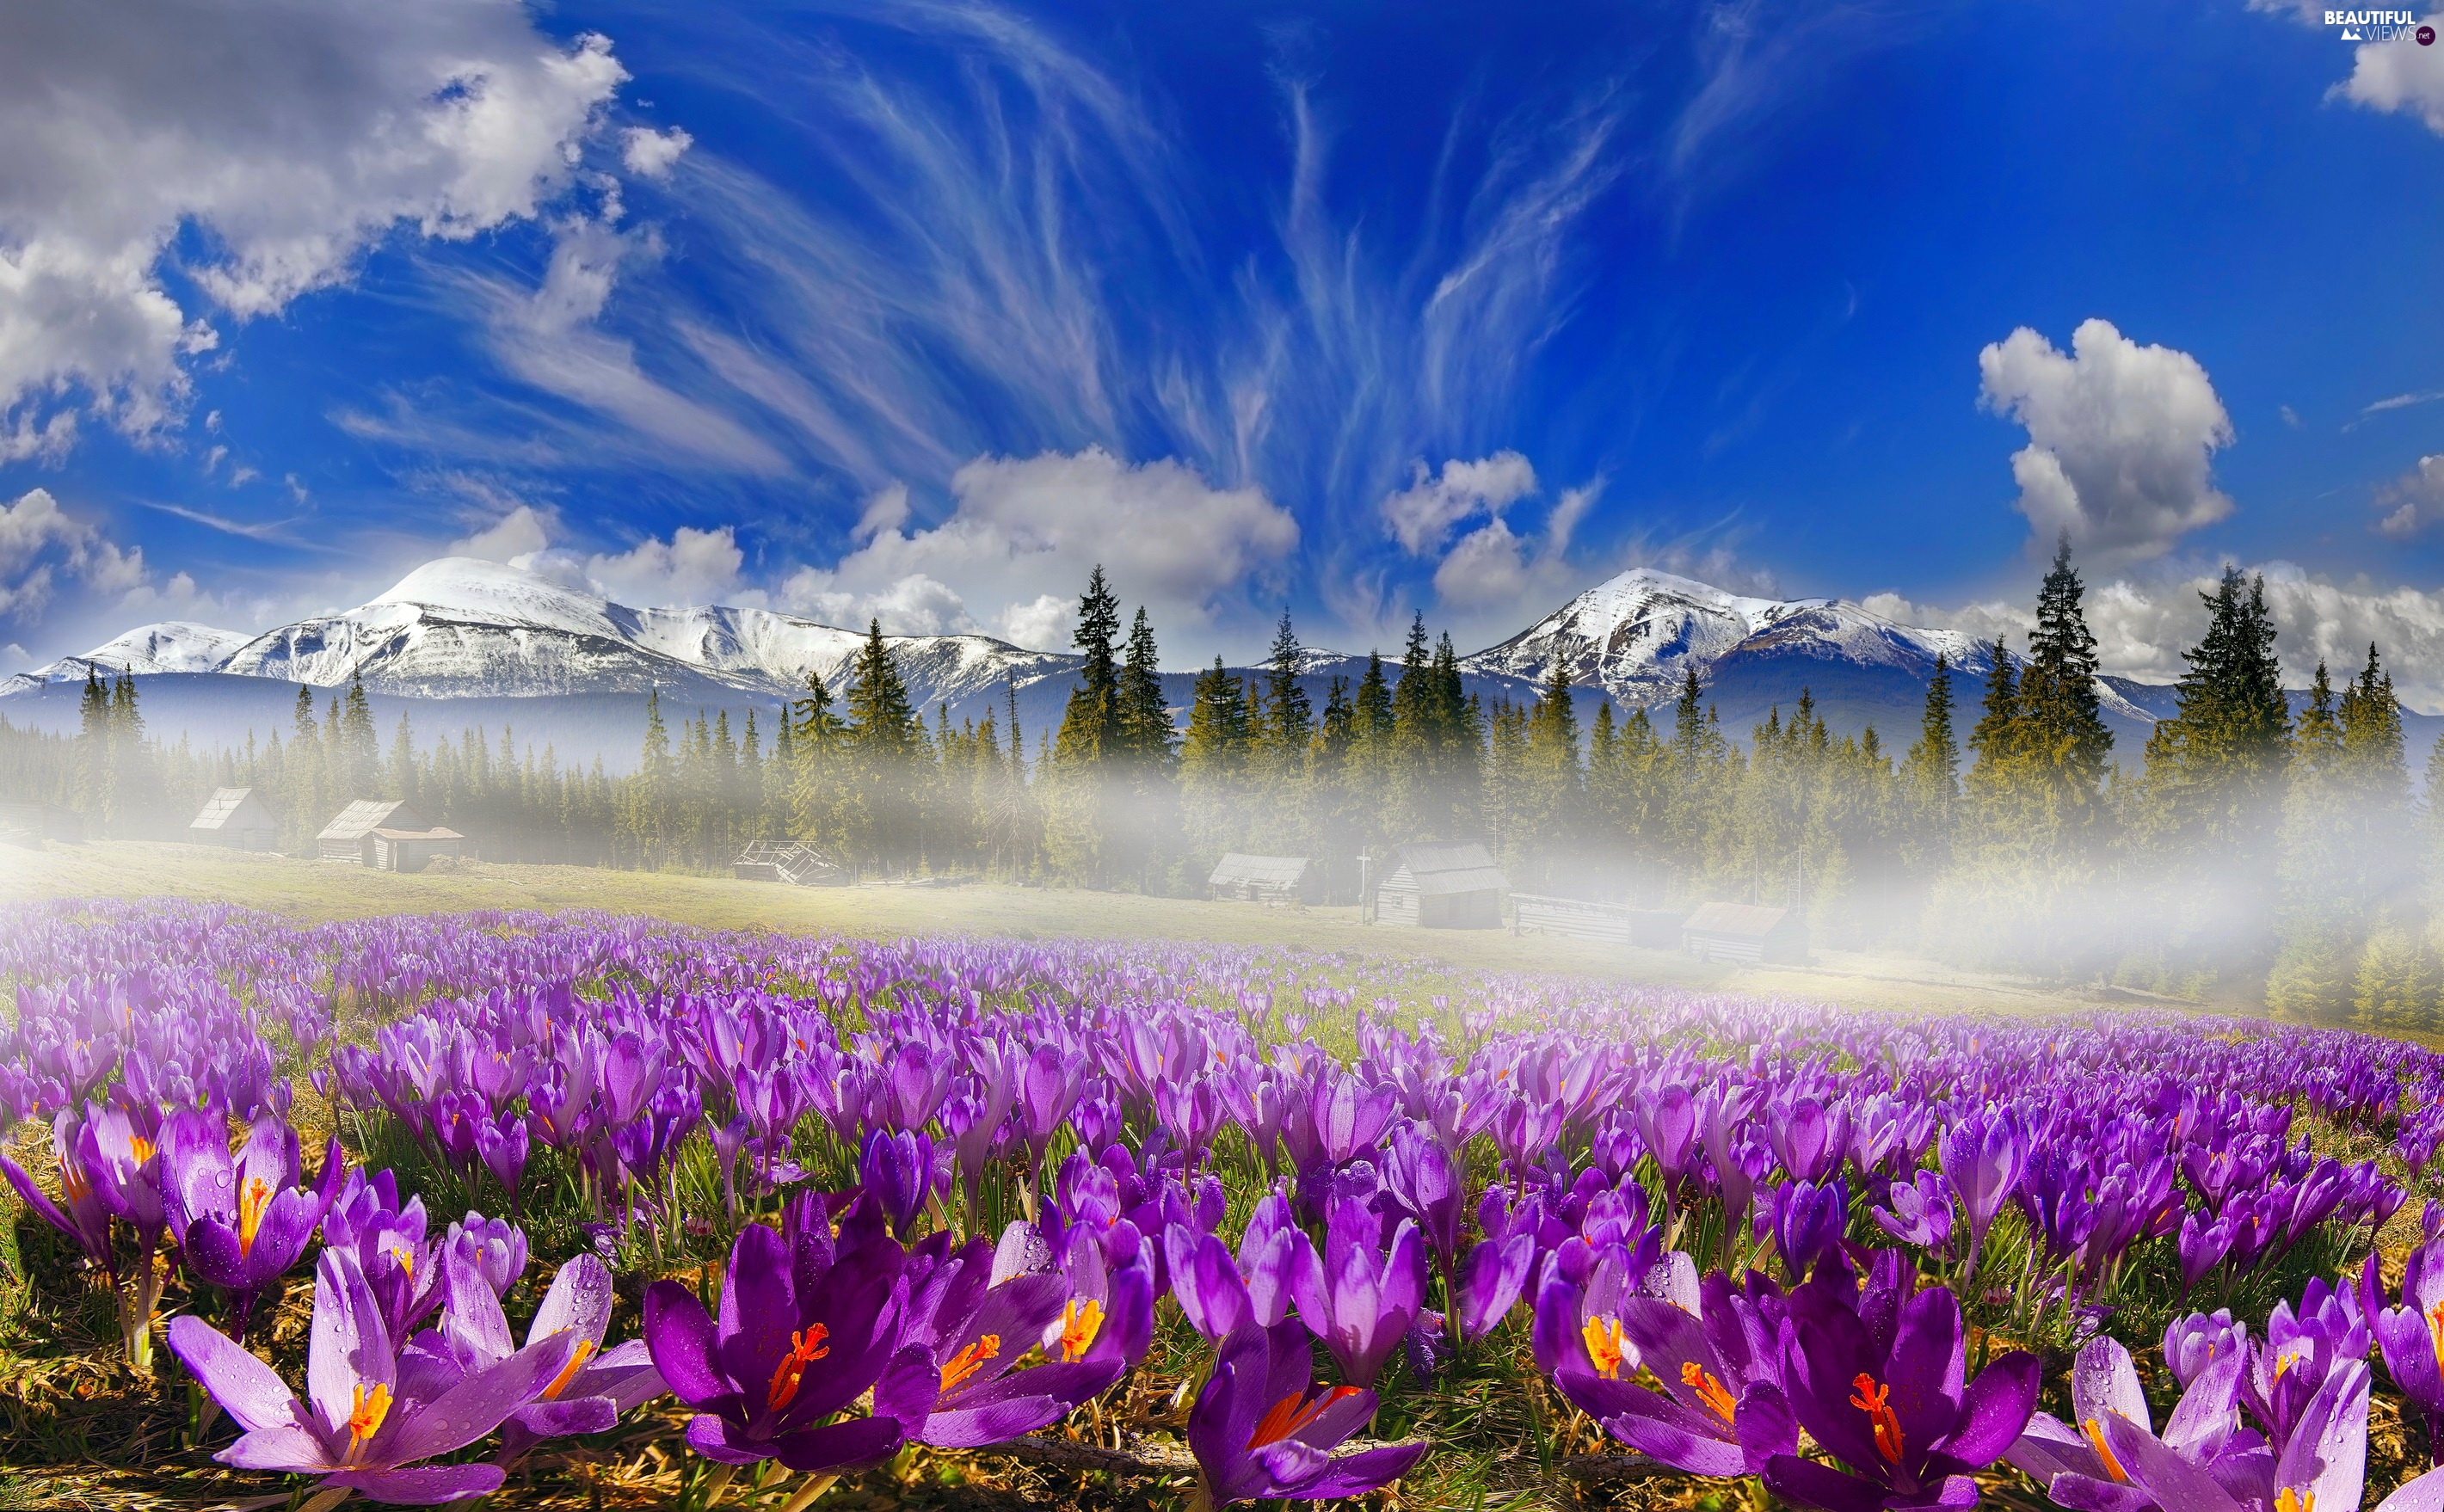 Houses, Mountains, Spring, Sky, Fog, Meadow, crocuses, clouds